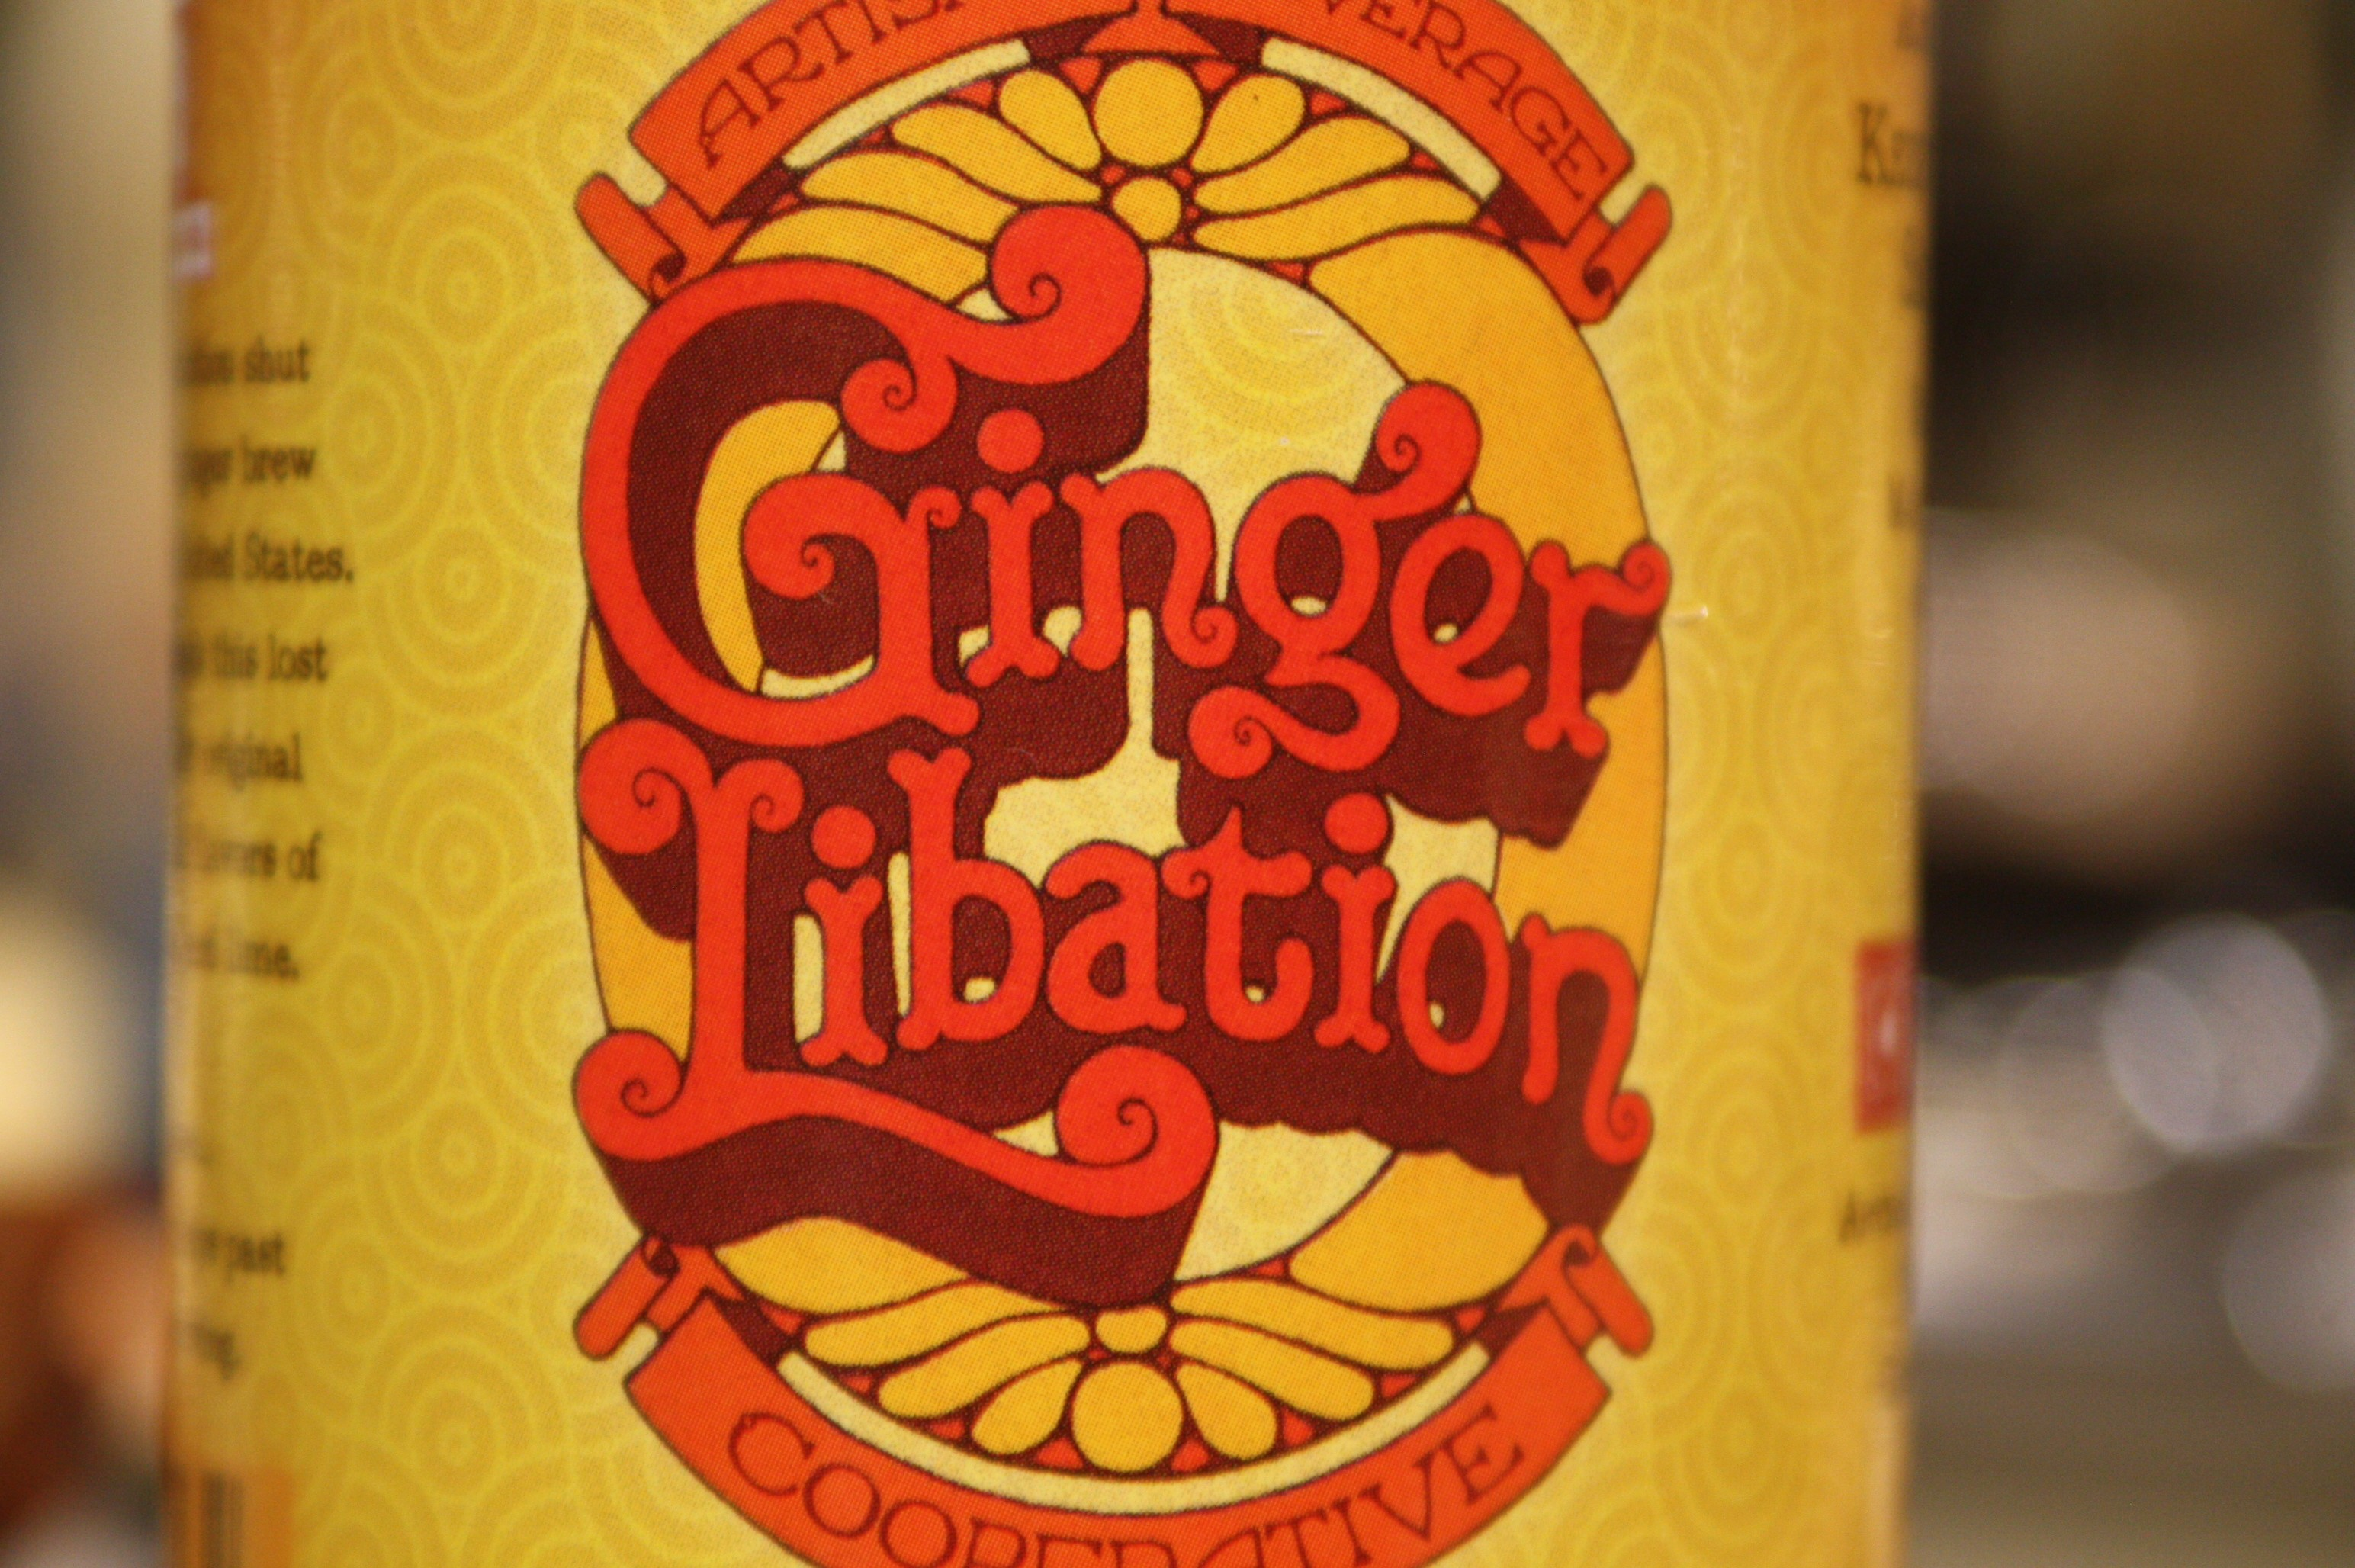 Ginger Libation